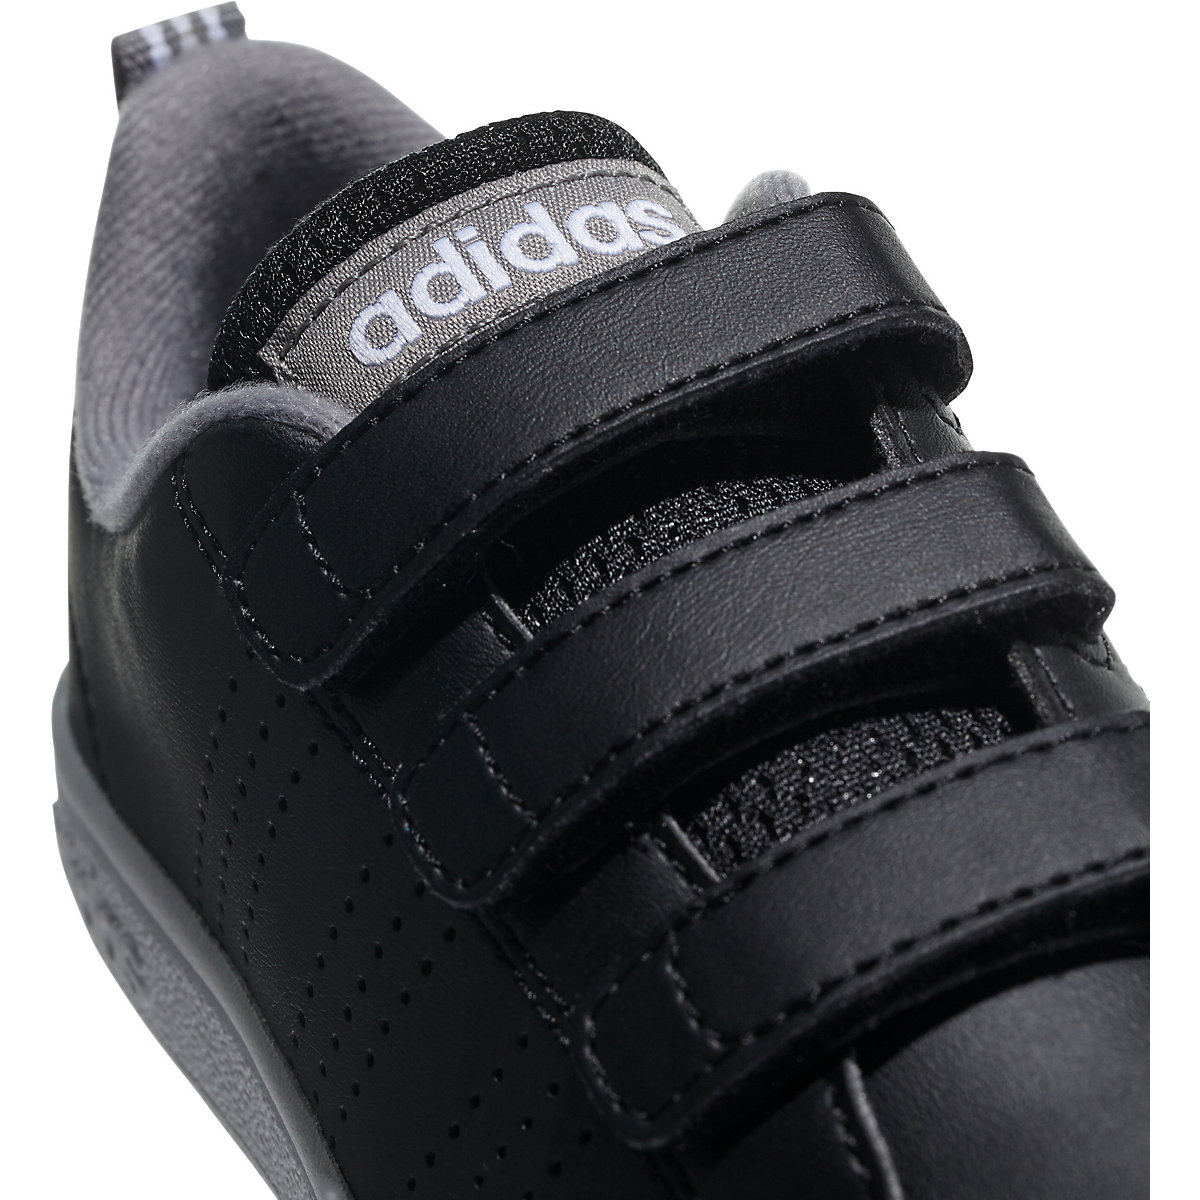 Adidas Sport Inspired, Kinder Sneakers Vs Adv Cl Cmf C, Schwarz